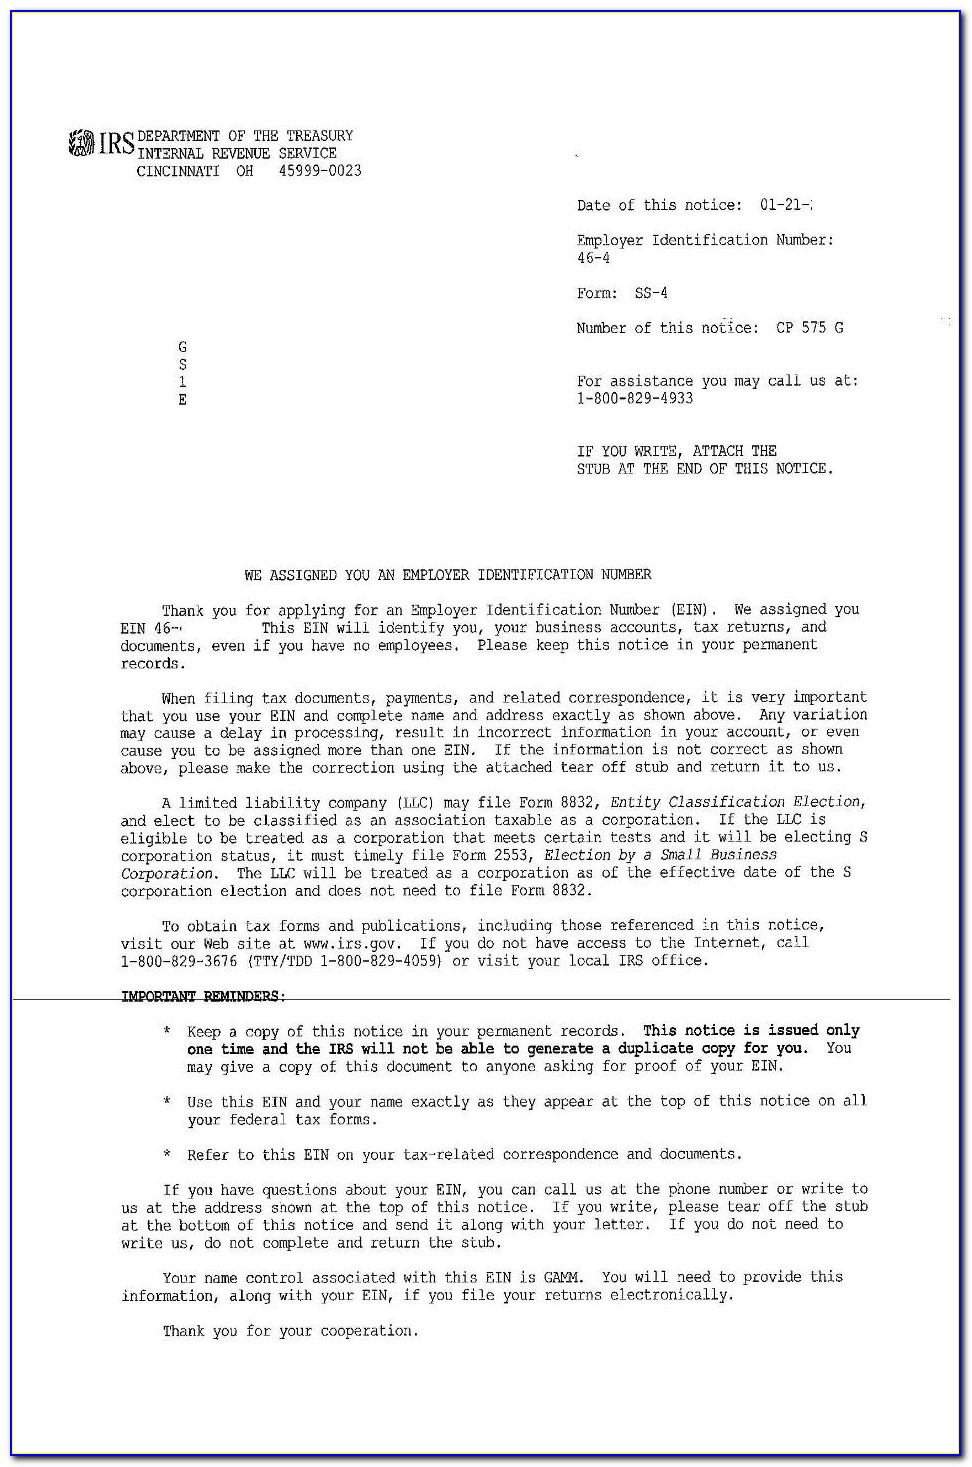 Irs Letter 147c Ein Previously Assigned